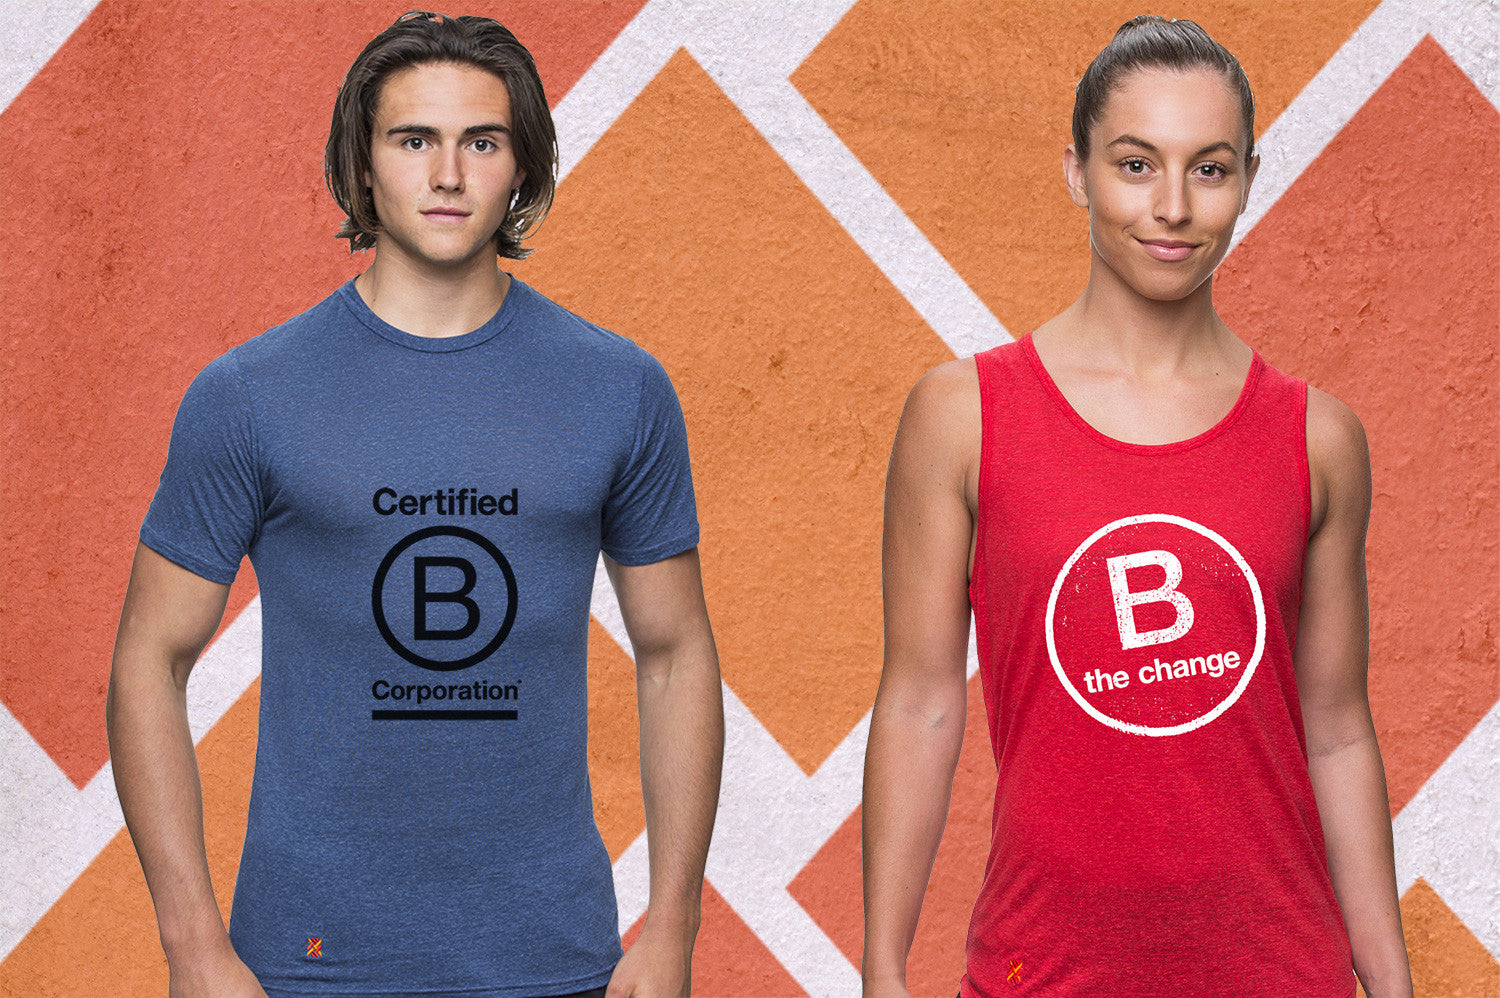 Two athletes, Male wearing a blue t-shirt with B Corporation logo on it and Female wearing a red singlet with a B Corporation logo.